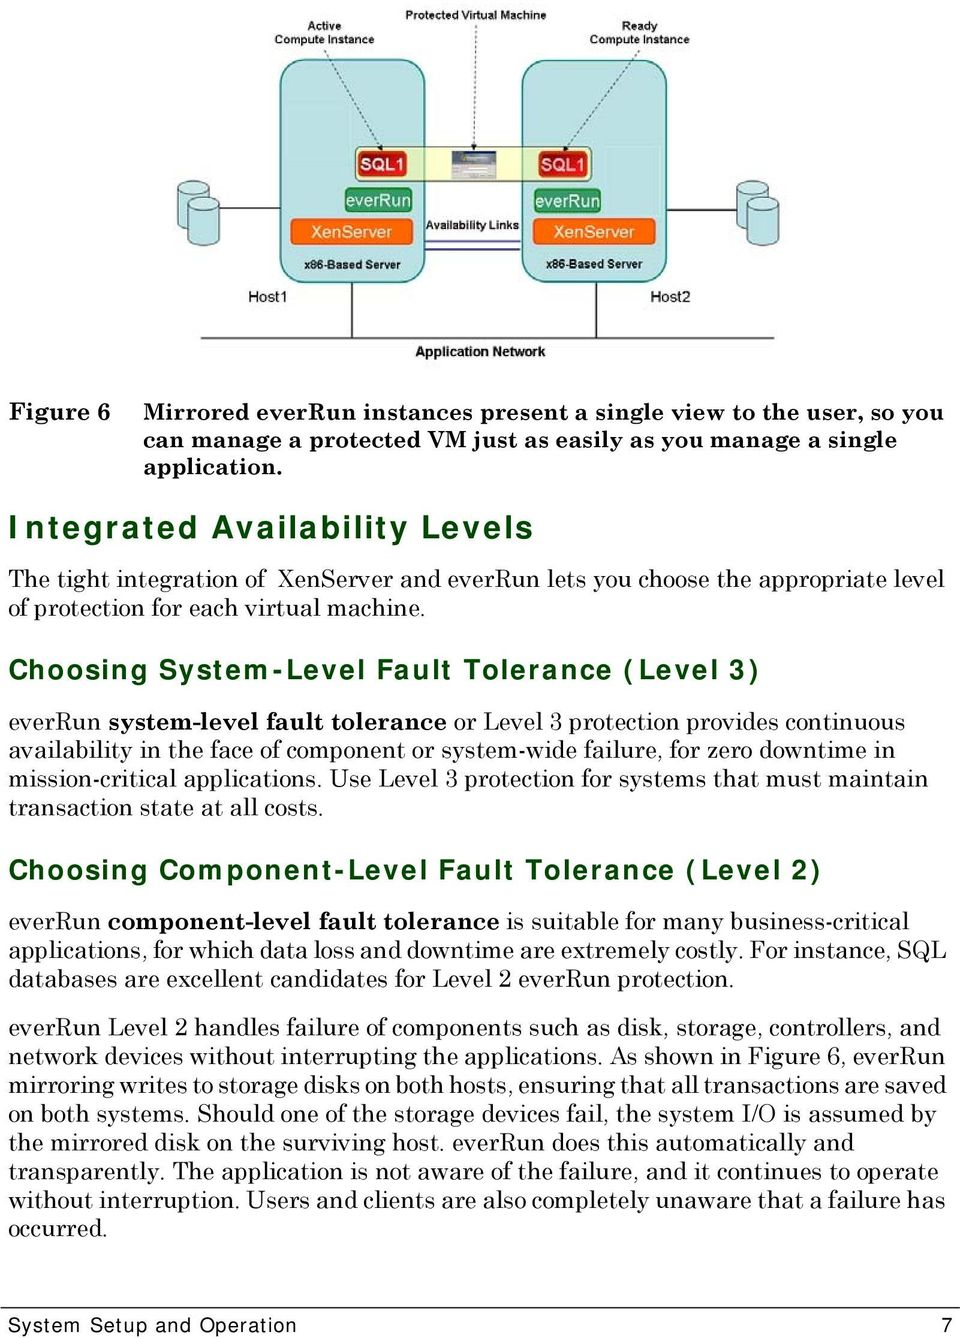 Choosing System-Level Fault Tolerance (Level 3) everrun system-level fault tolerance or Level 3 protection provides continuous availability in the face of component or system-wide failure, for zero